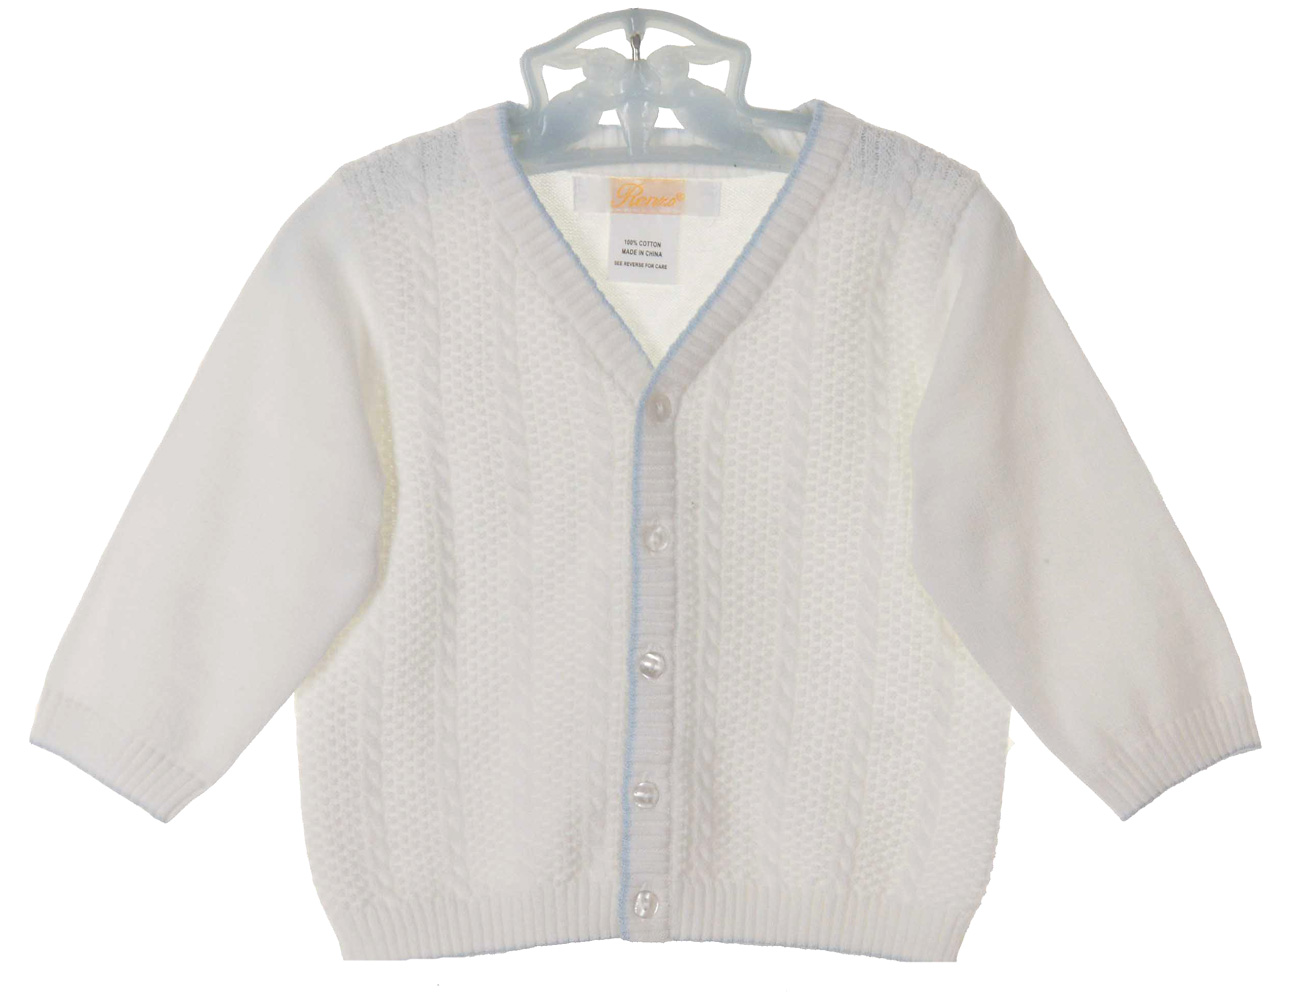 Renzo white cotton knit cardigan sweater with blue trim,baby boys ...